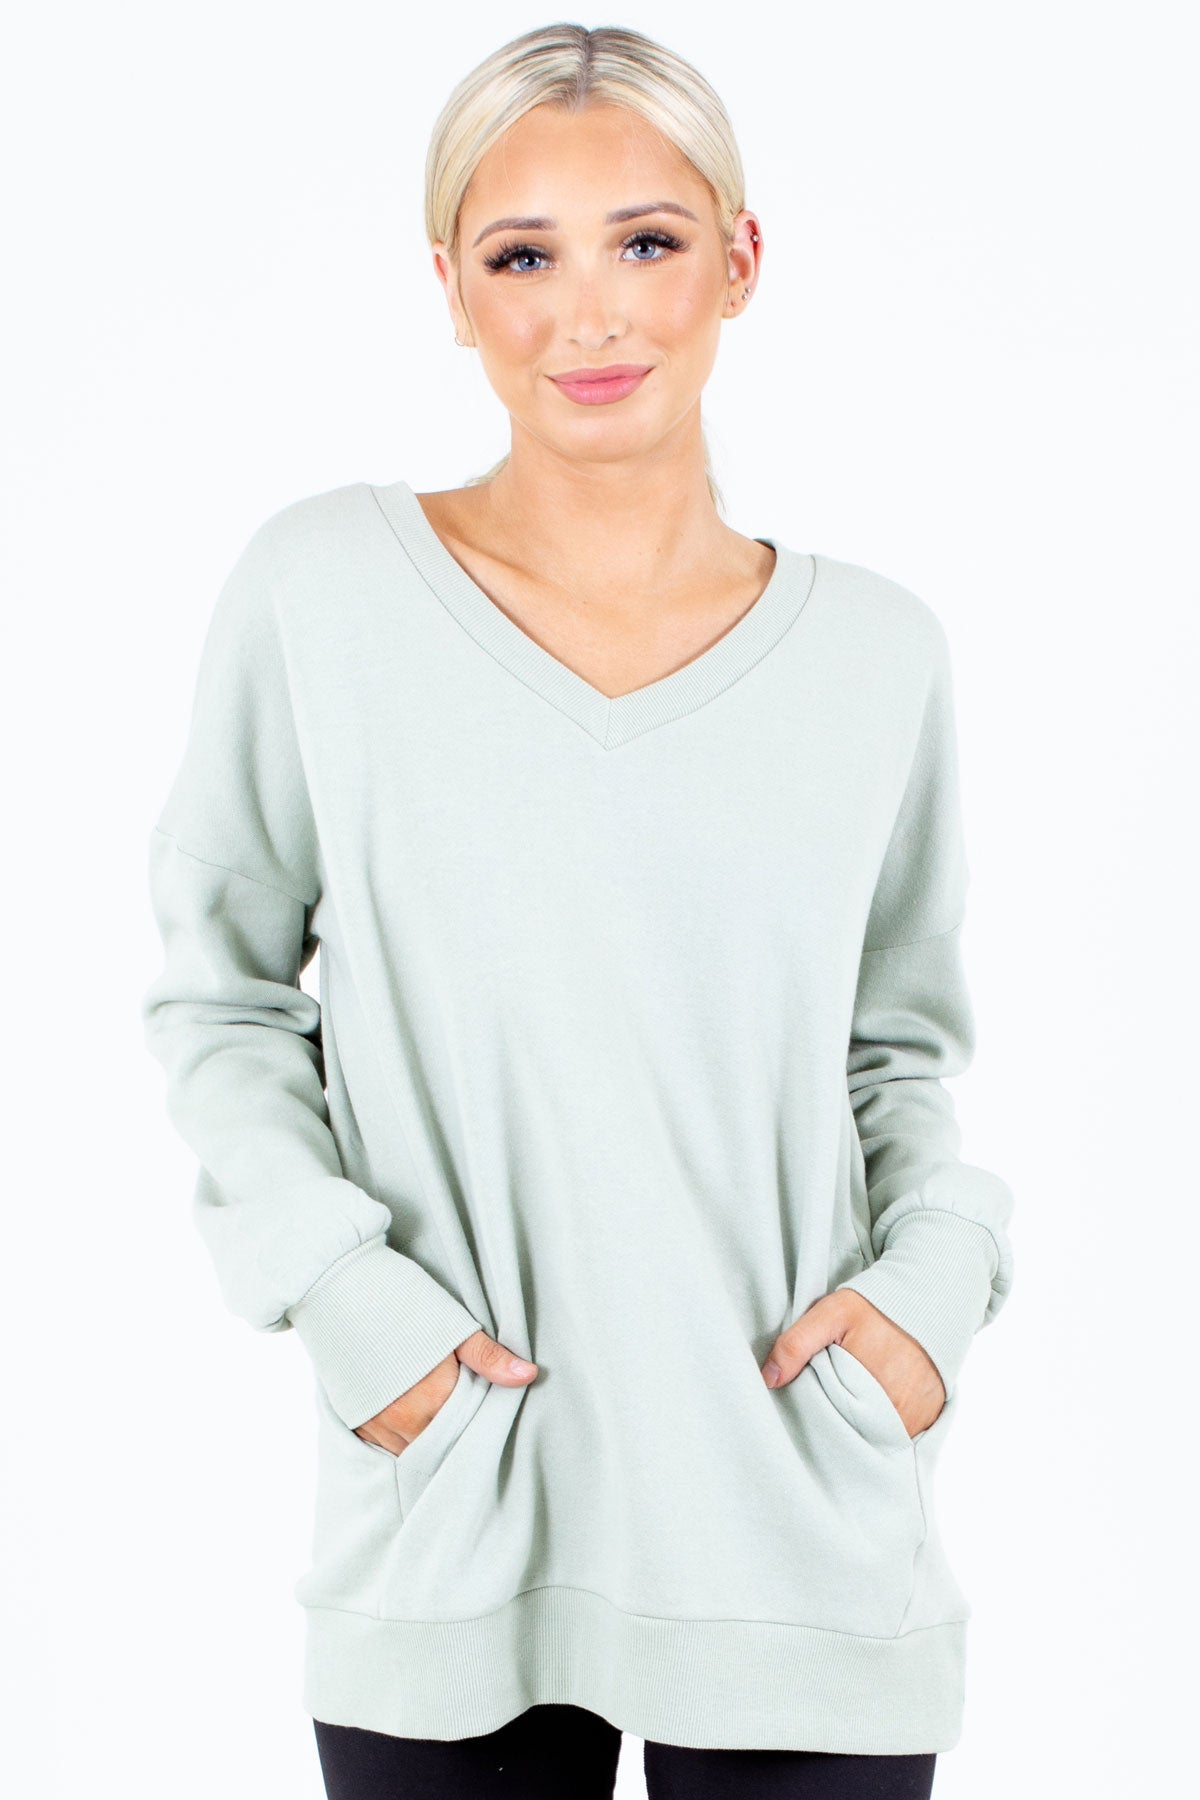 Sage Green V-Neckline Boutique Pullovers for Women